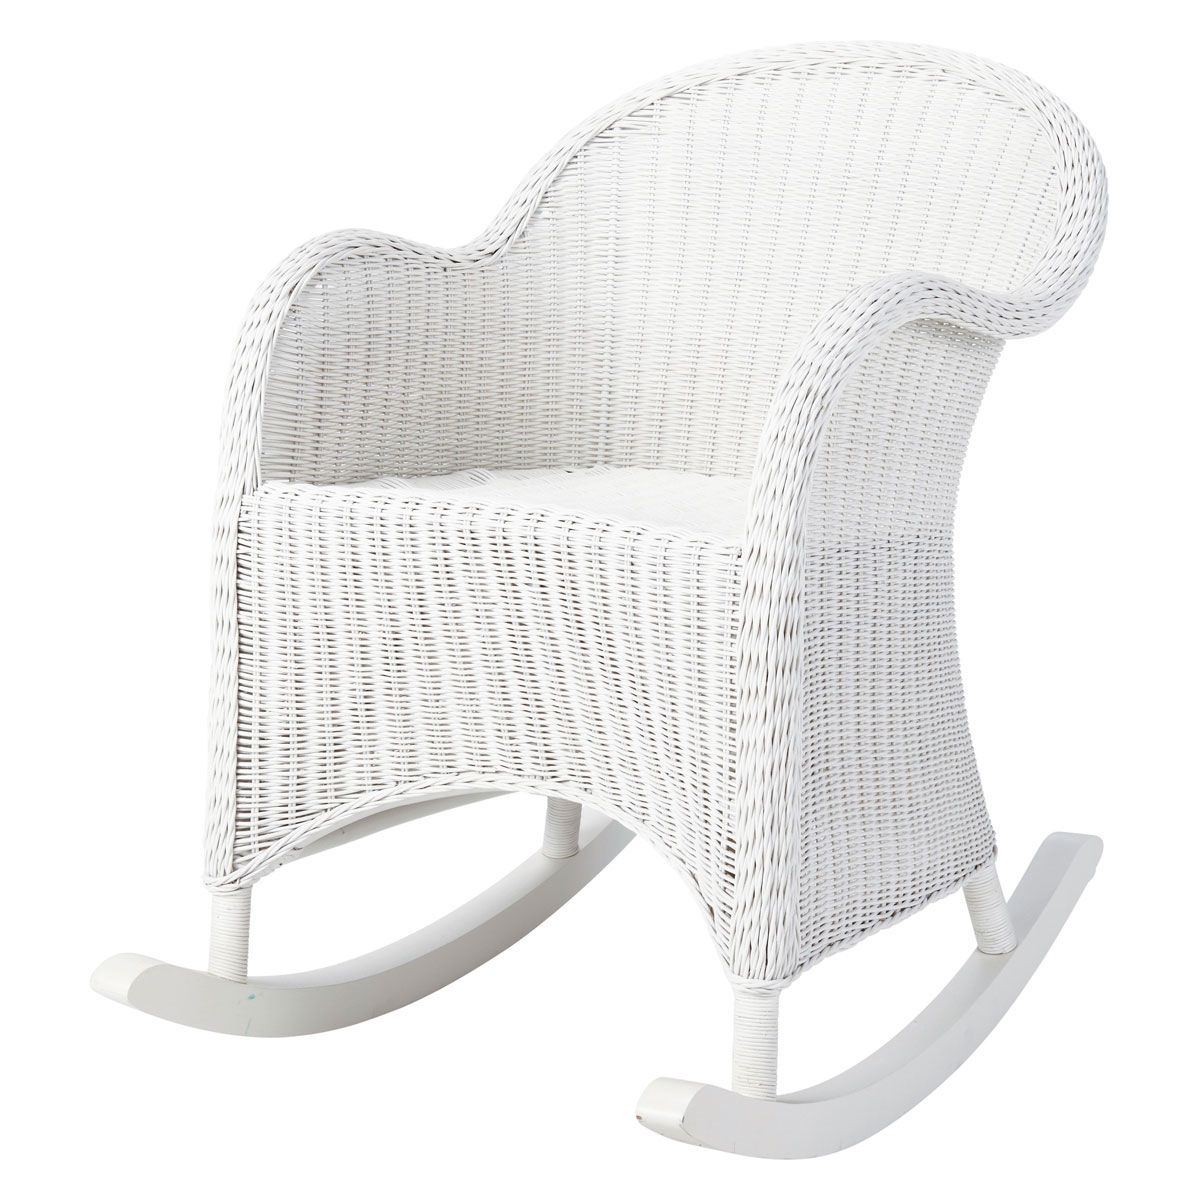 rocking chair enfant en rotin blanc oc an chambre b b. Black Bedroom Furniture Sets. Home Design Ideas